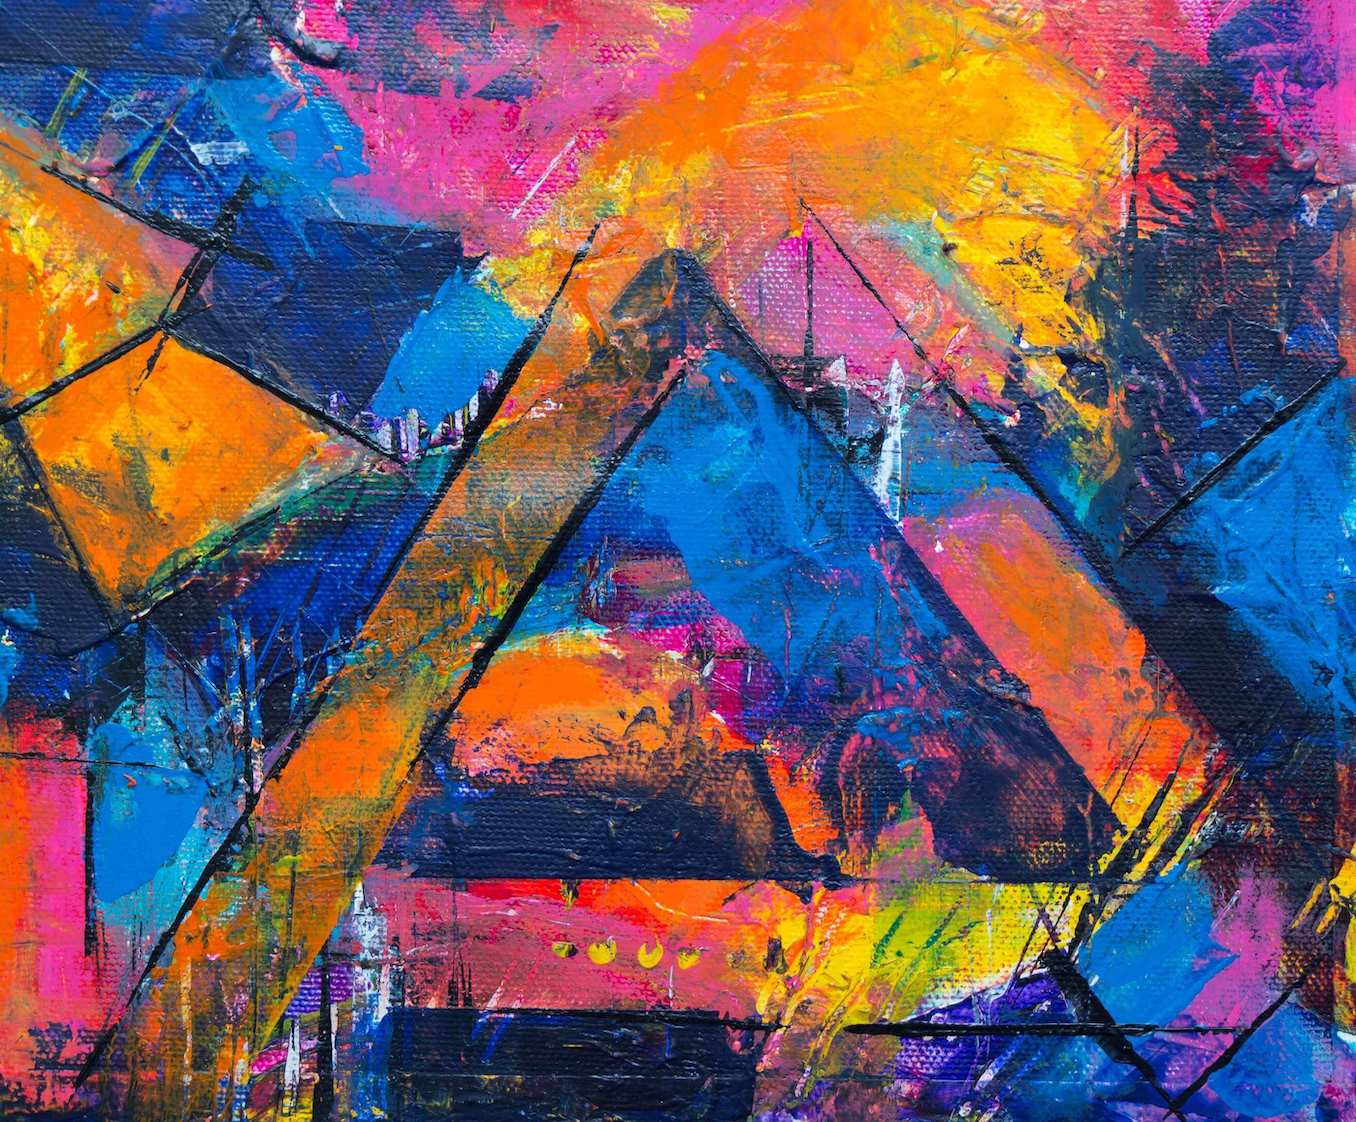 A colorful abstract painting with angular shapes